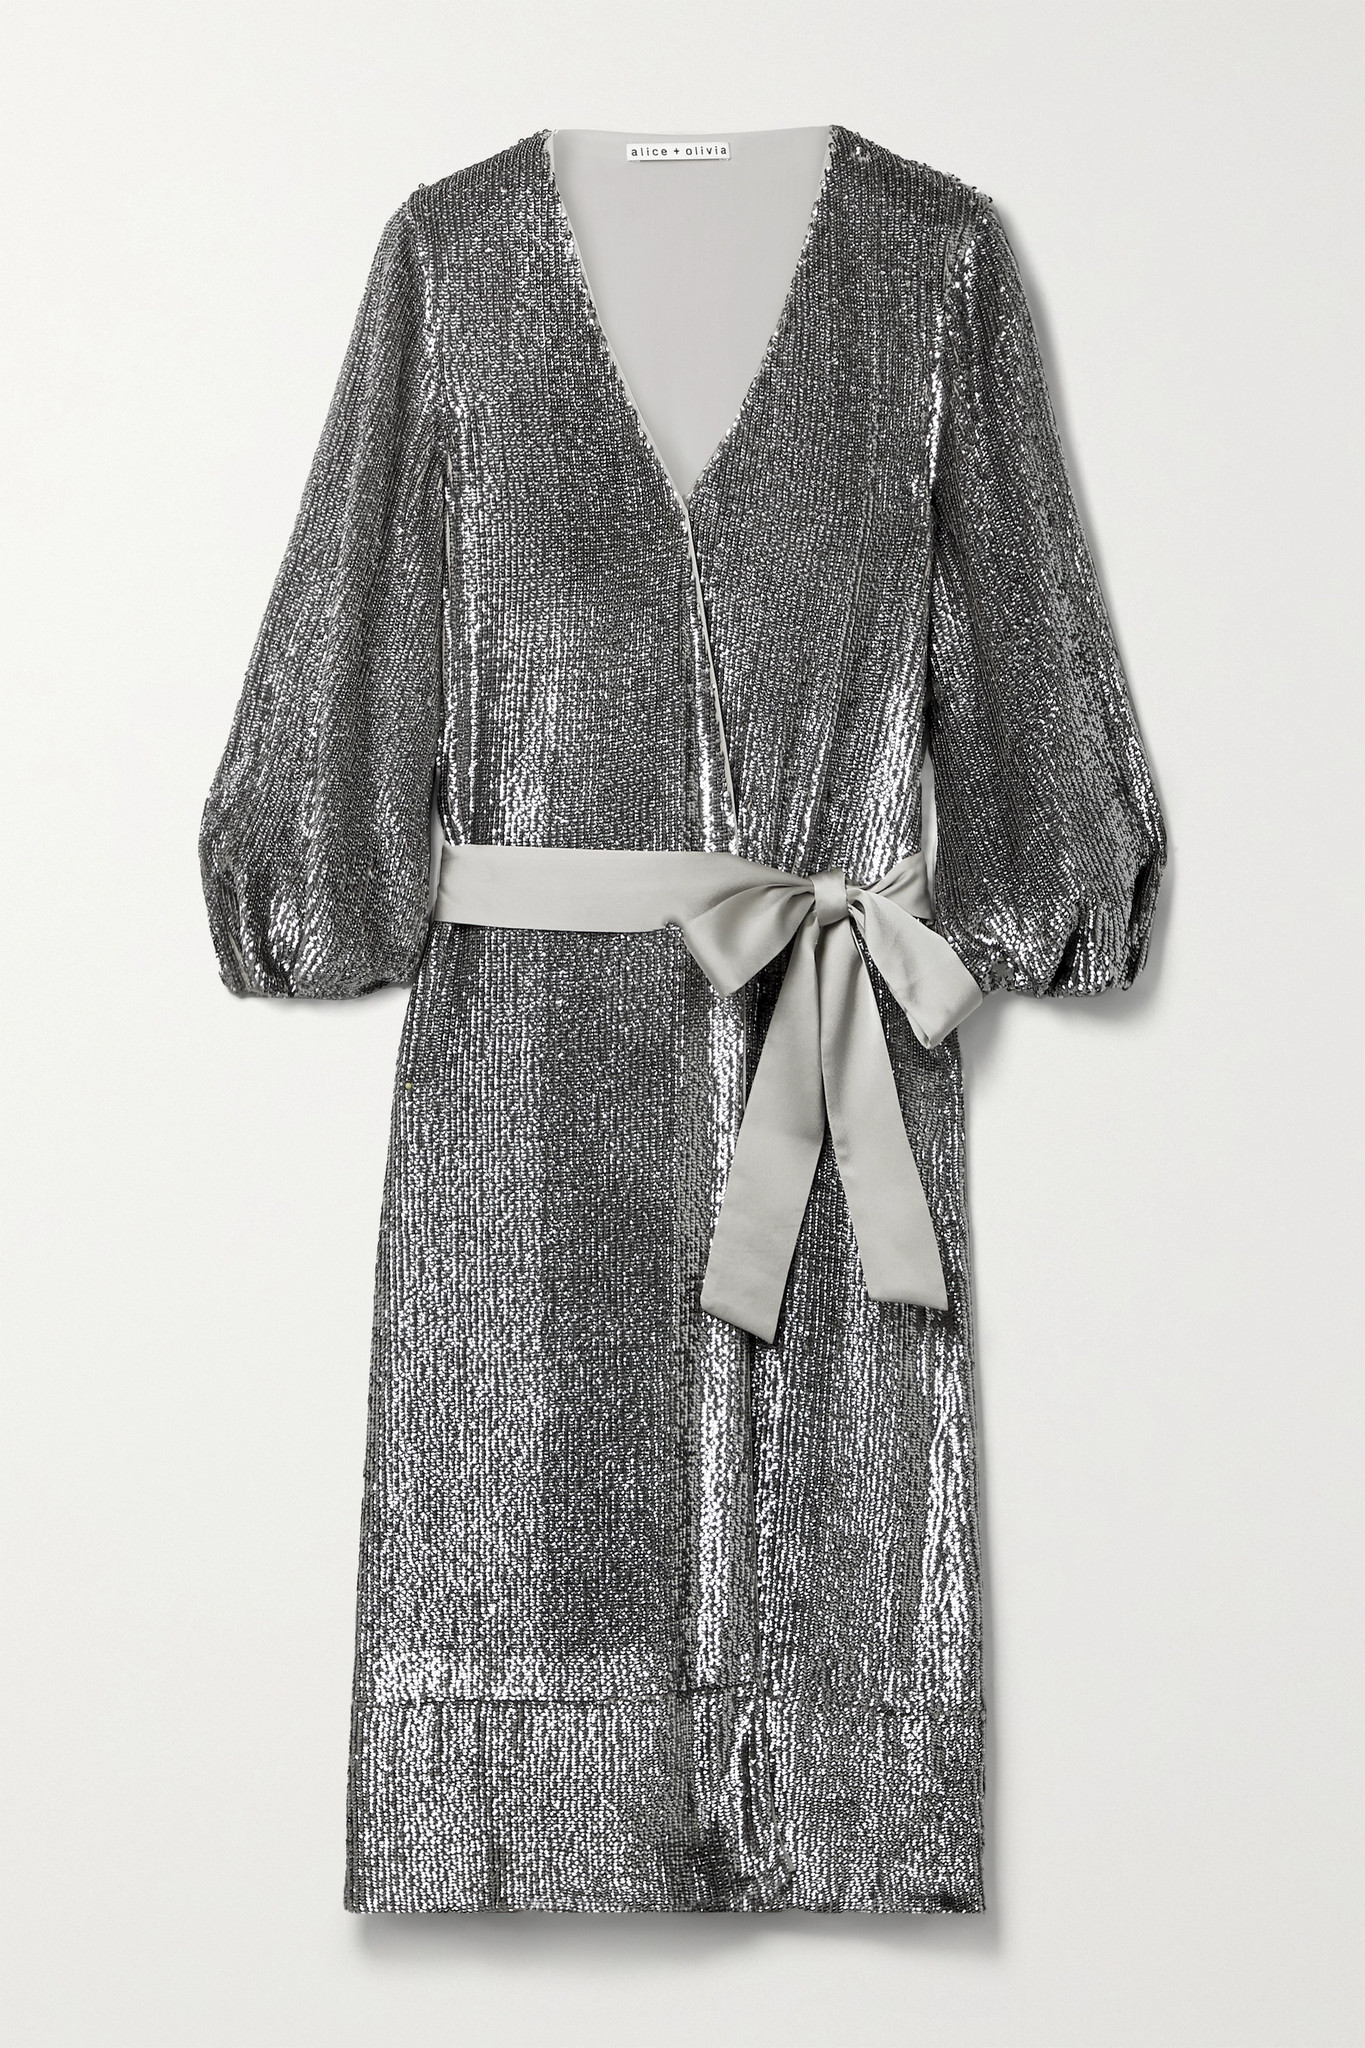 ALICE + OLIVIA - Anne Satin-trimmed Sequined Crepe De Chine Wrap Midi Dress - Silver - US10